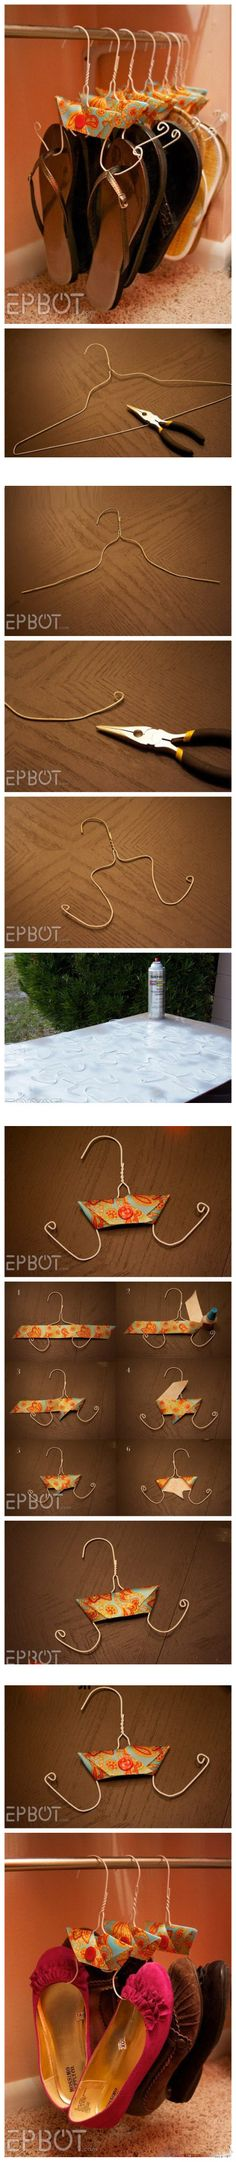 DIY shoes hangers